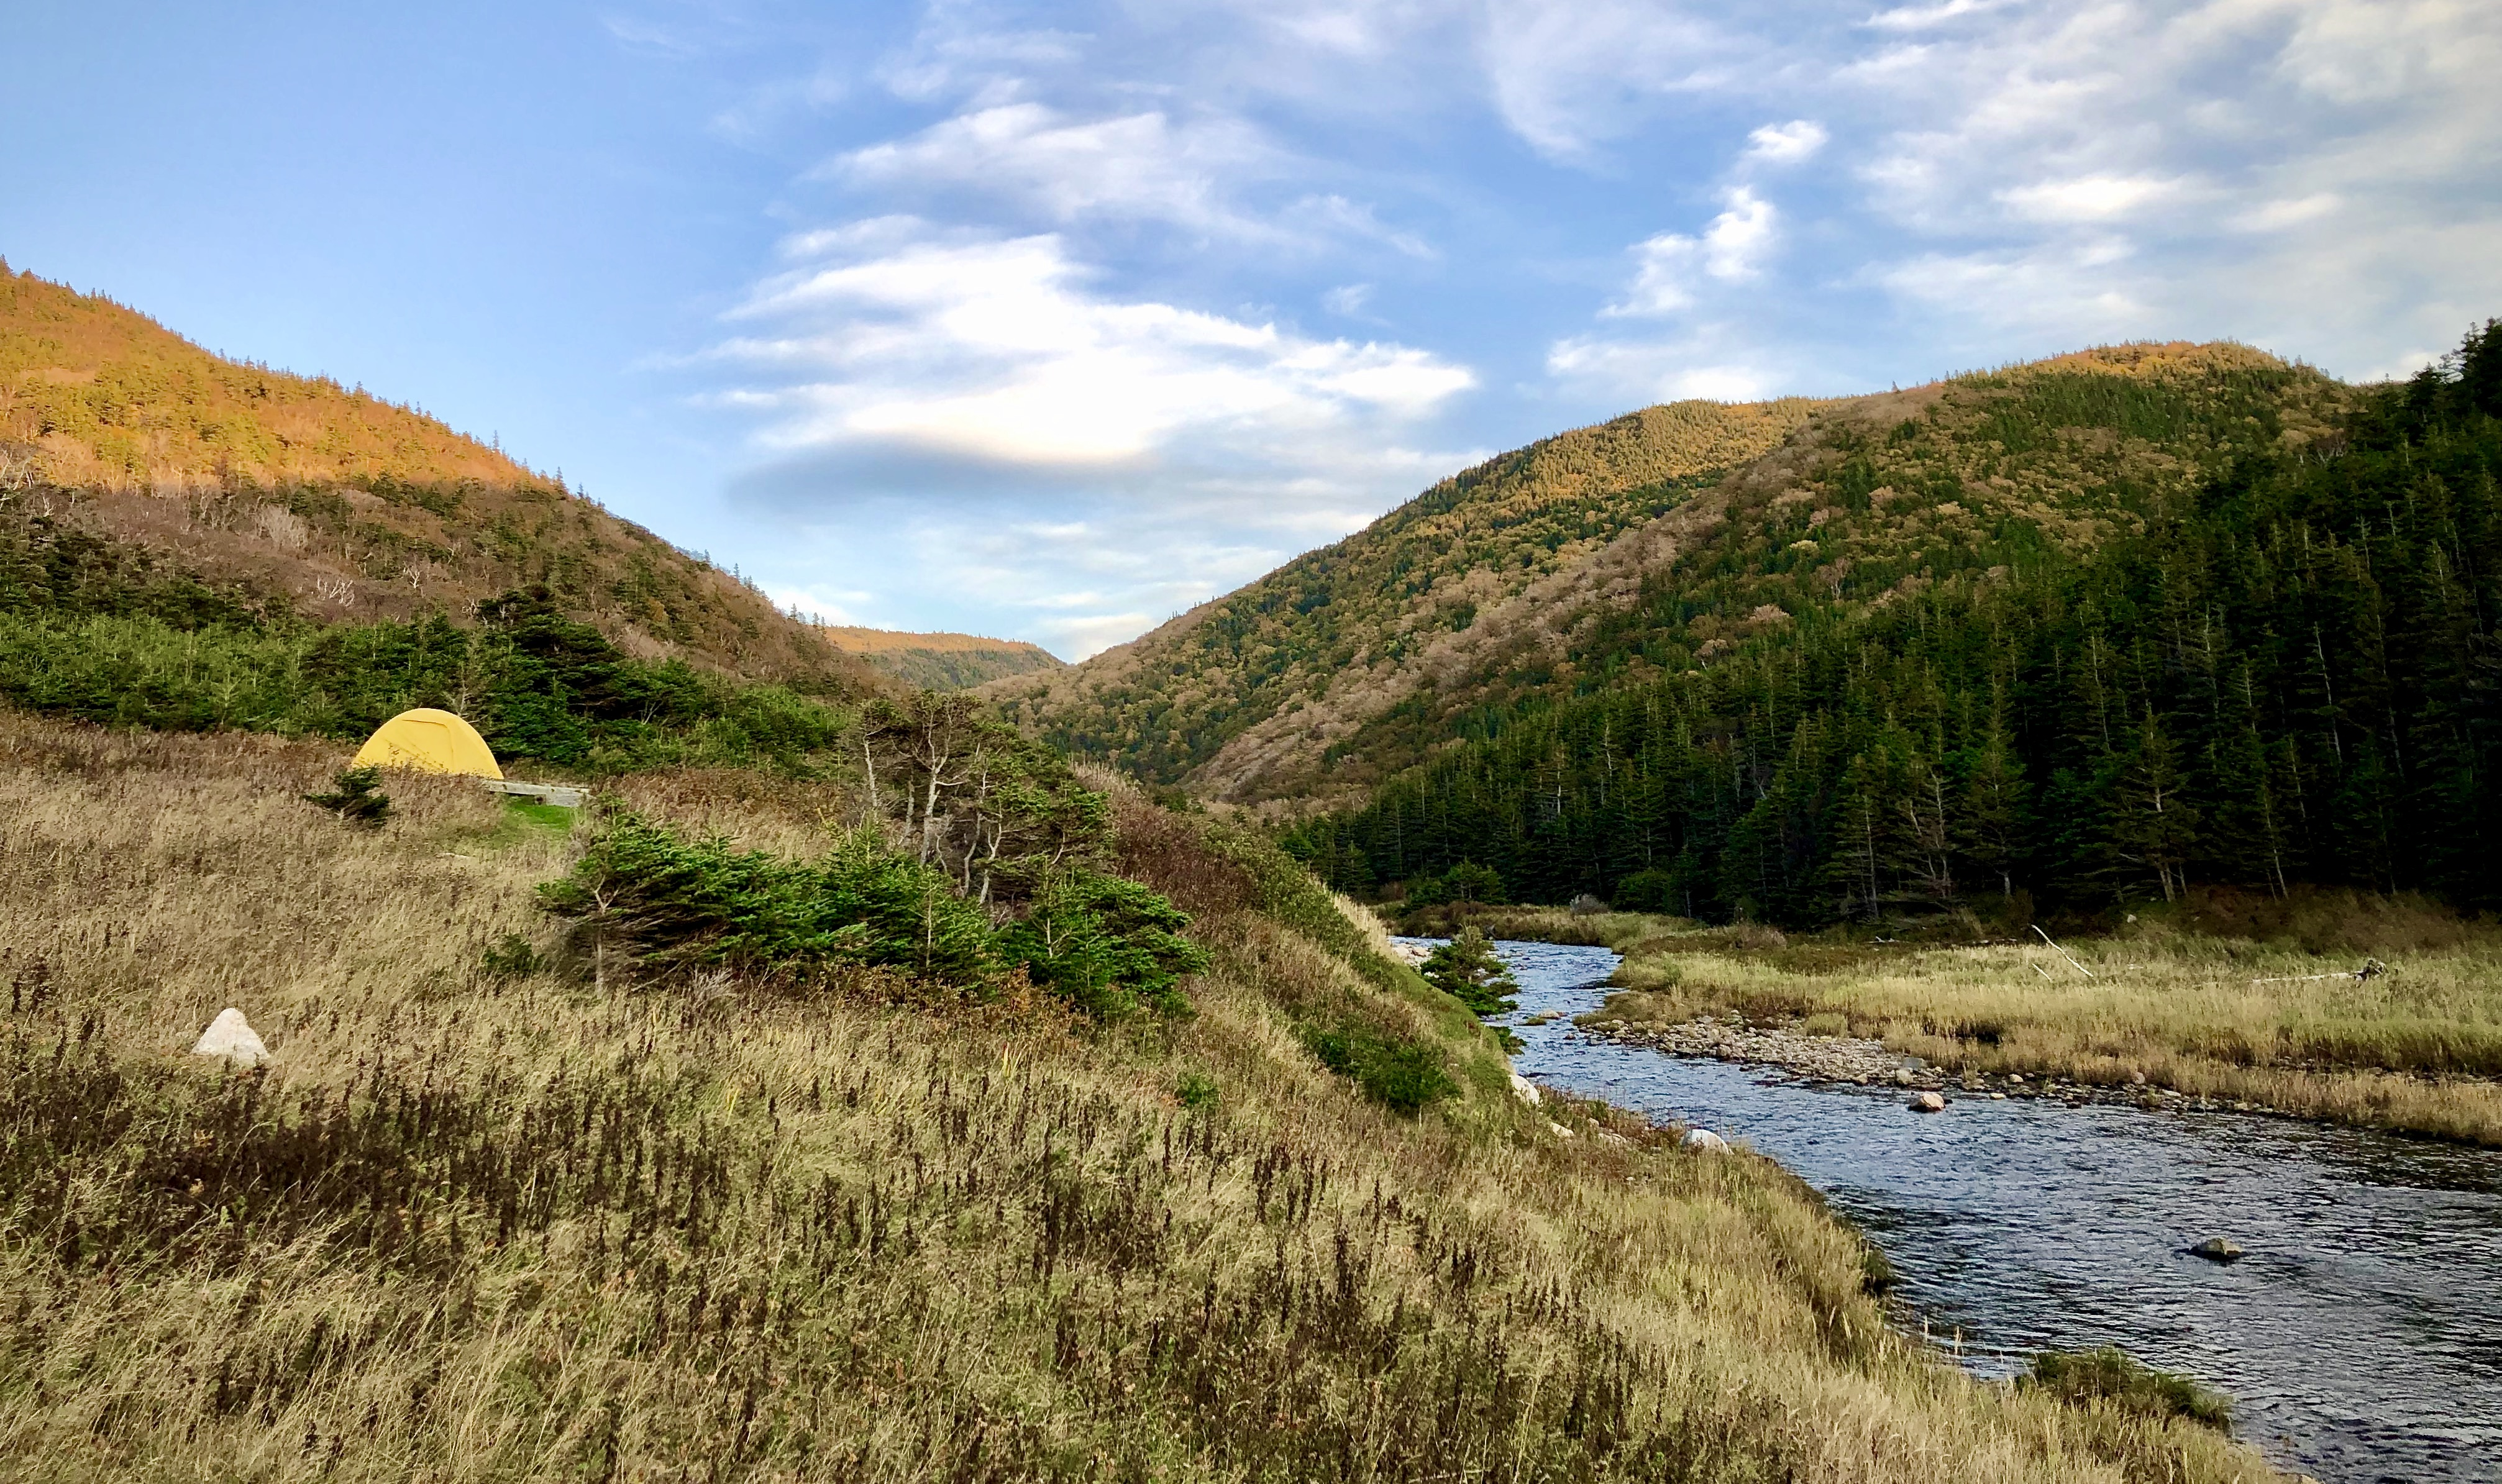 In the Backcountry: Camping at Fishing Cove, Cape Breton Highlands National Park